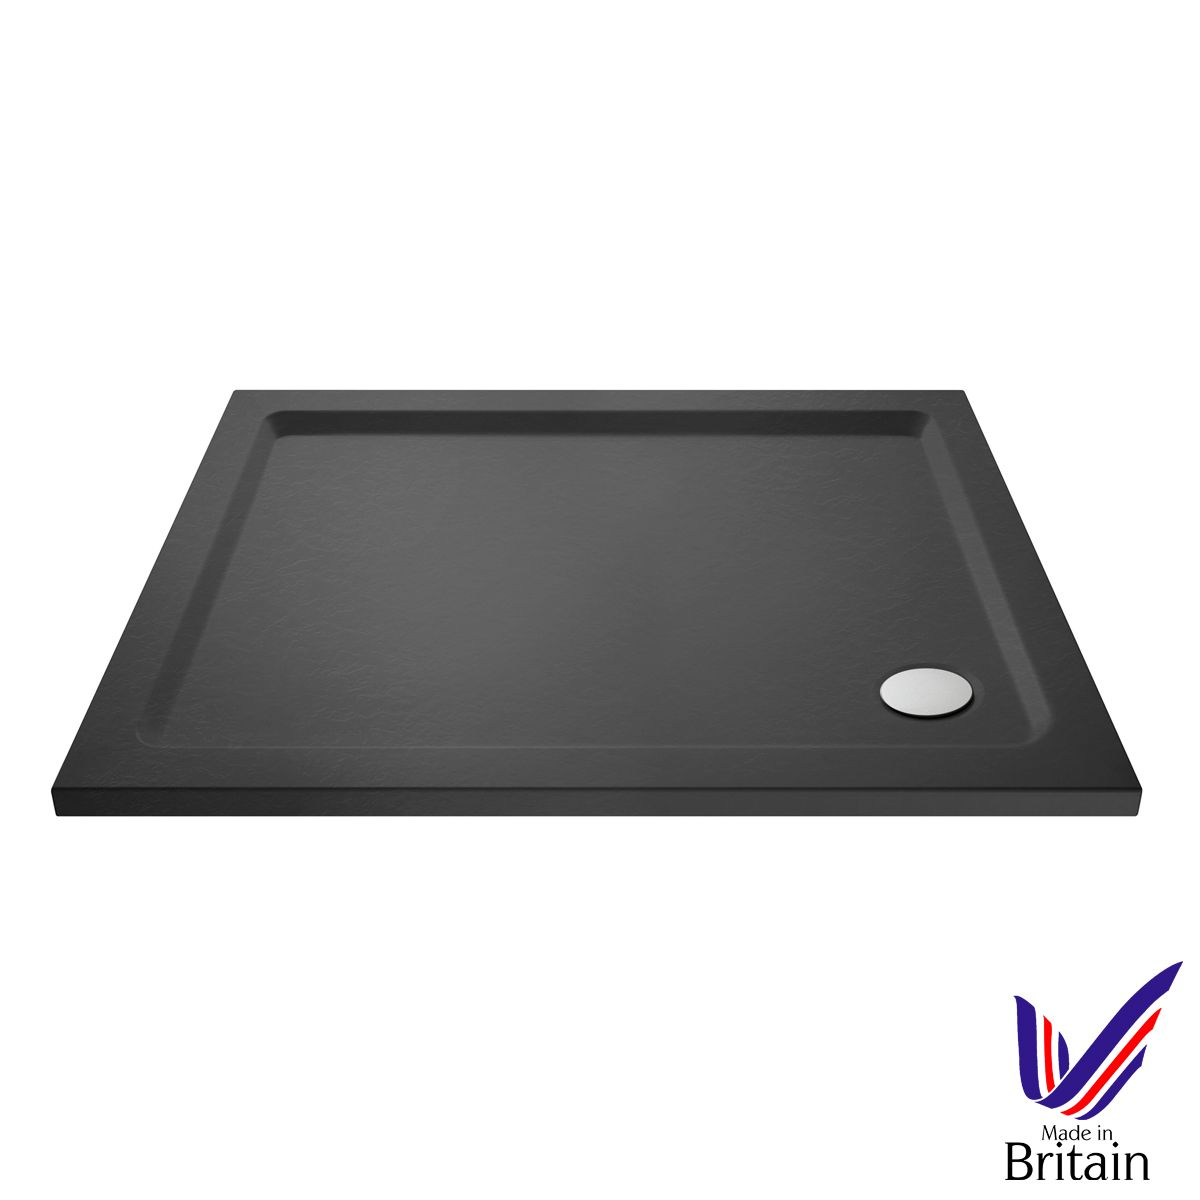 1000 x 700 Shower Tray Slate Grey Rectangular Low Profile by Pearlstone